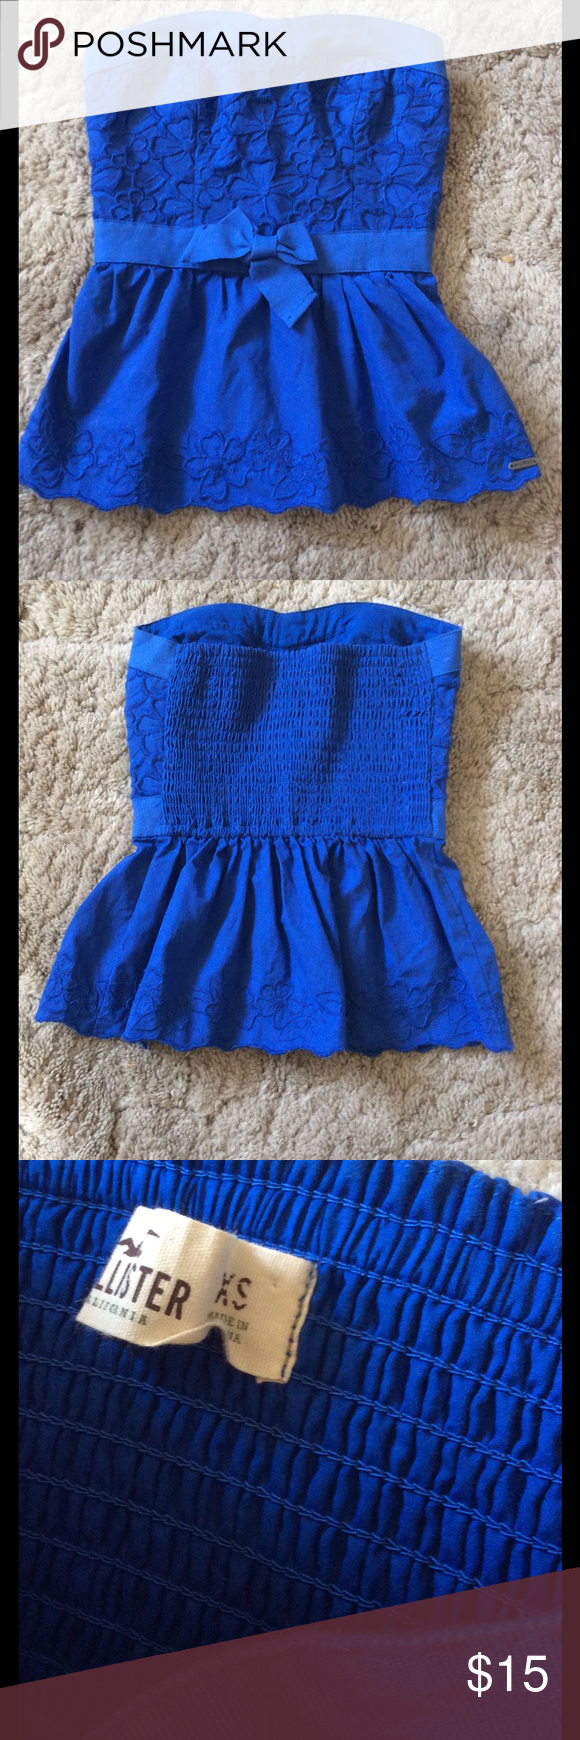 """Blue Strapless Peplum Top Pretty blue peplum hem strapless top by Hollister.  The back is elastic.  Has floral embroidered detail.  Length- 15"""",  Bust- 12"""",  Waist- 10.5"""".  Very good condition, worn lightly, smoke free home. Hollister Tops"""